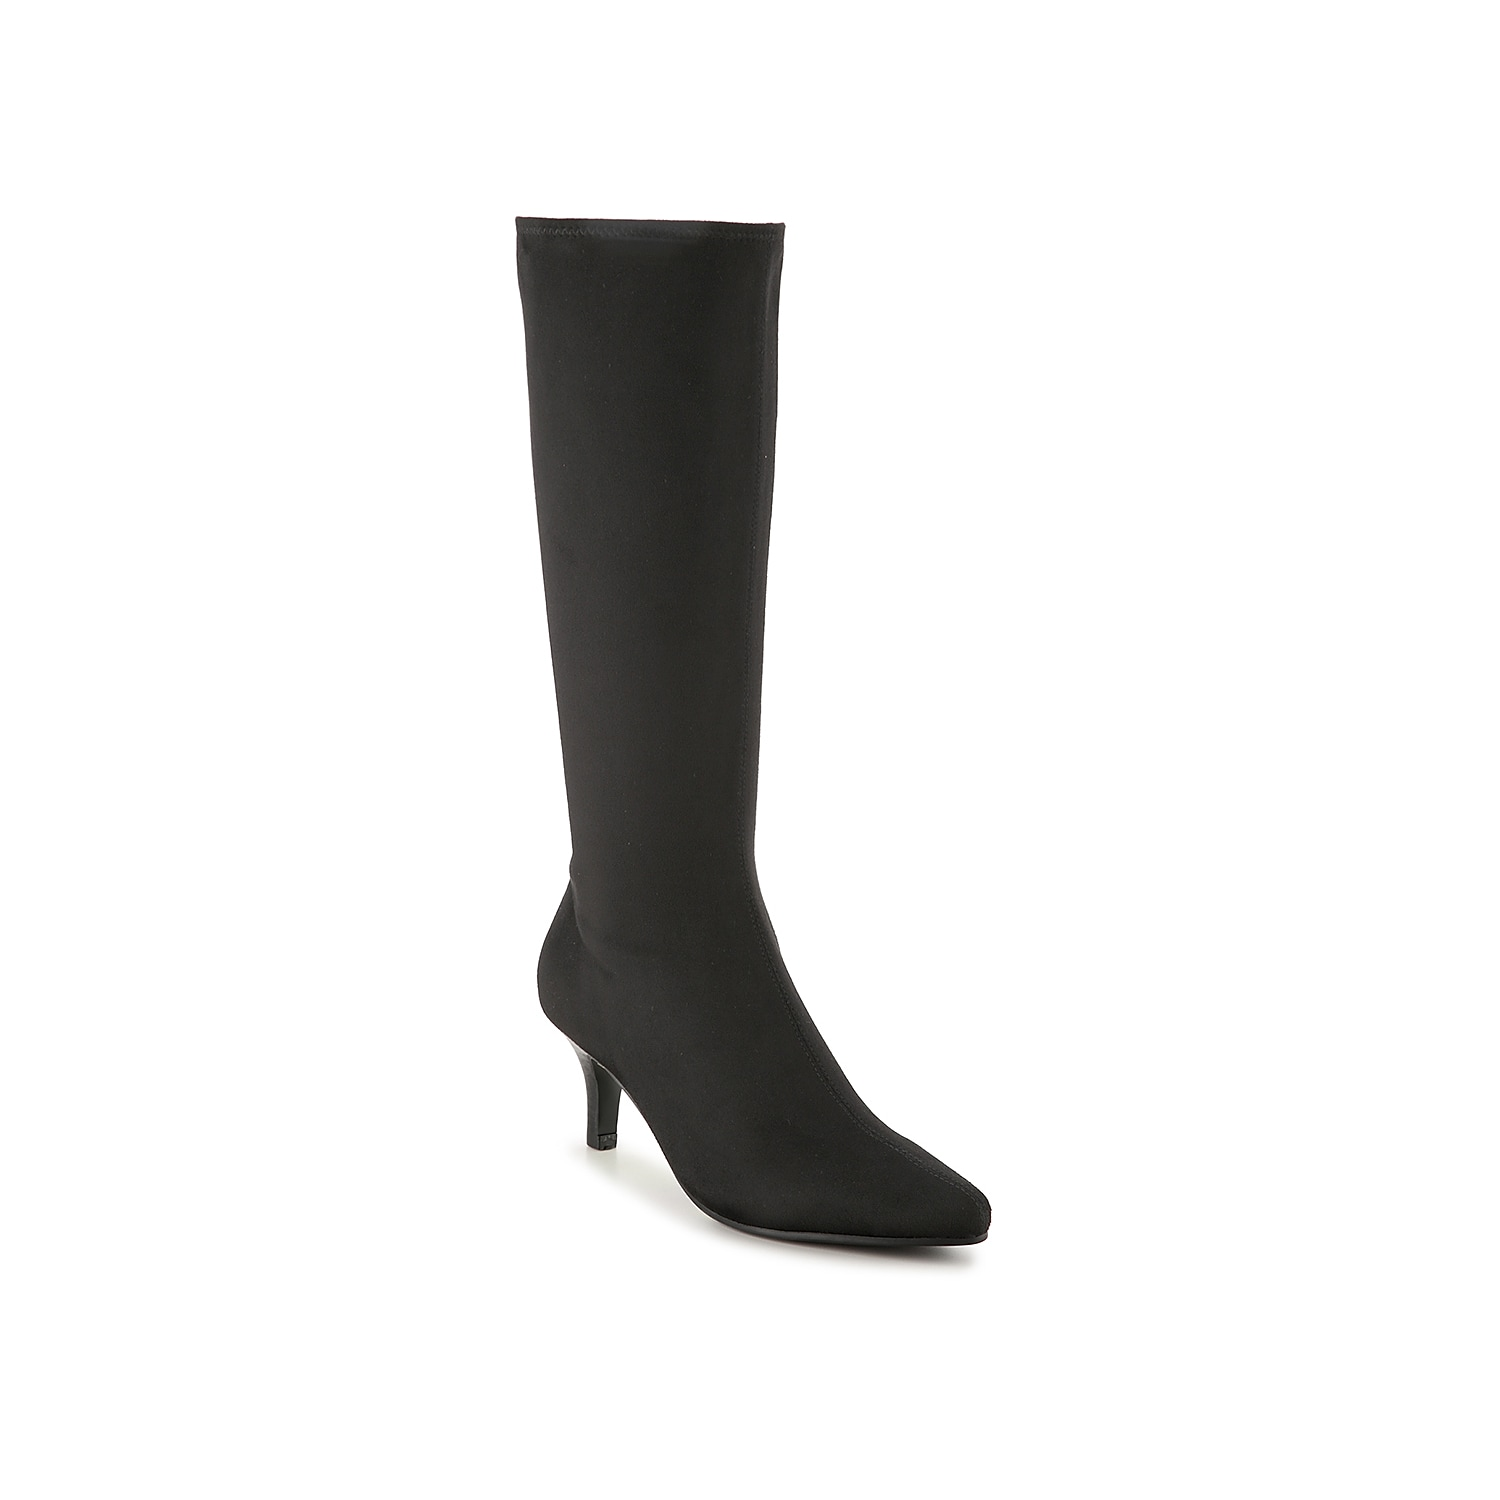 Searching for a versatile tall boot to dress up your classic look? Impo has you covered with the Norris knee high boots! With a modest kitten heel and a sleek pointed toe, these stunning stretch boots will polish off any ensemble with sophisticated style.Click here for Boot Measuring Guide.